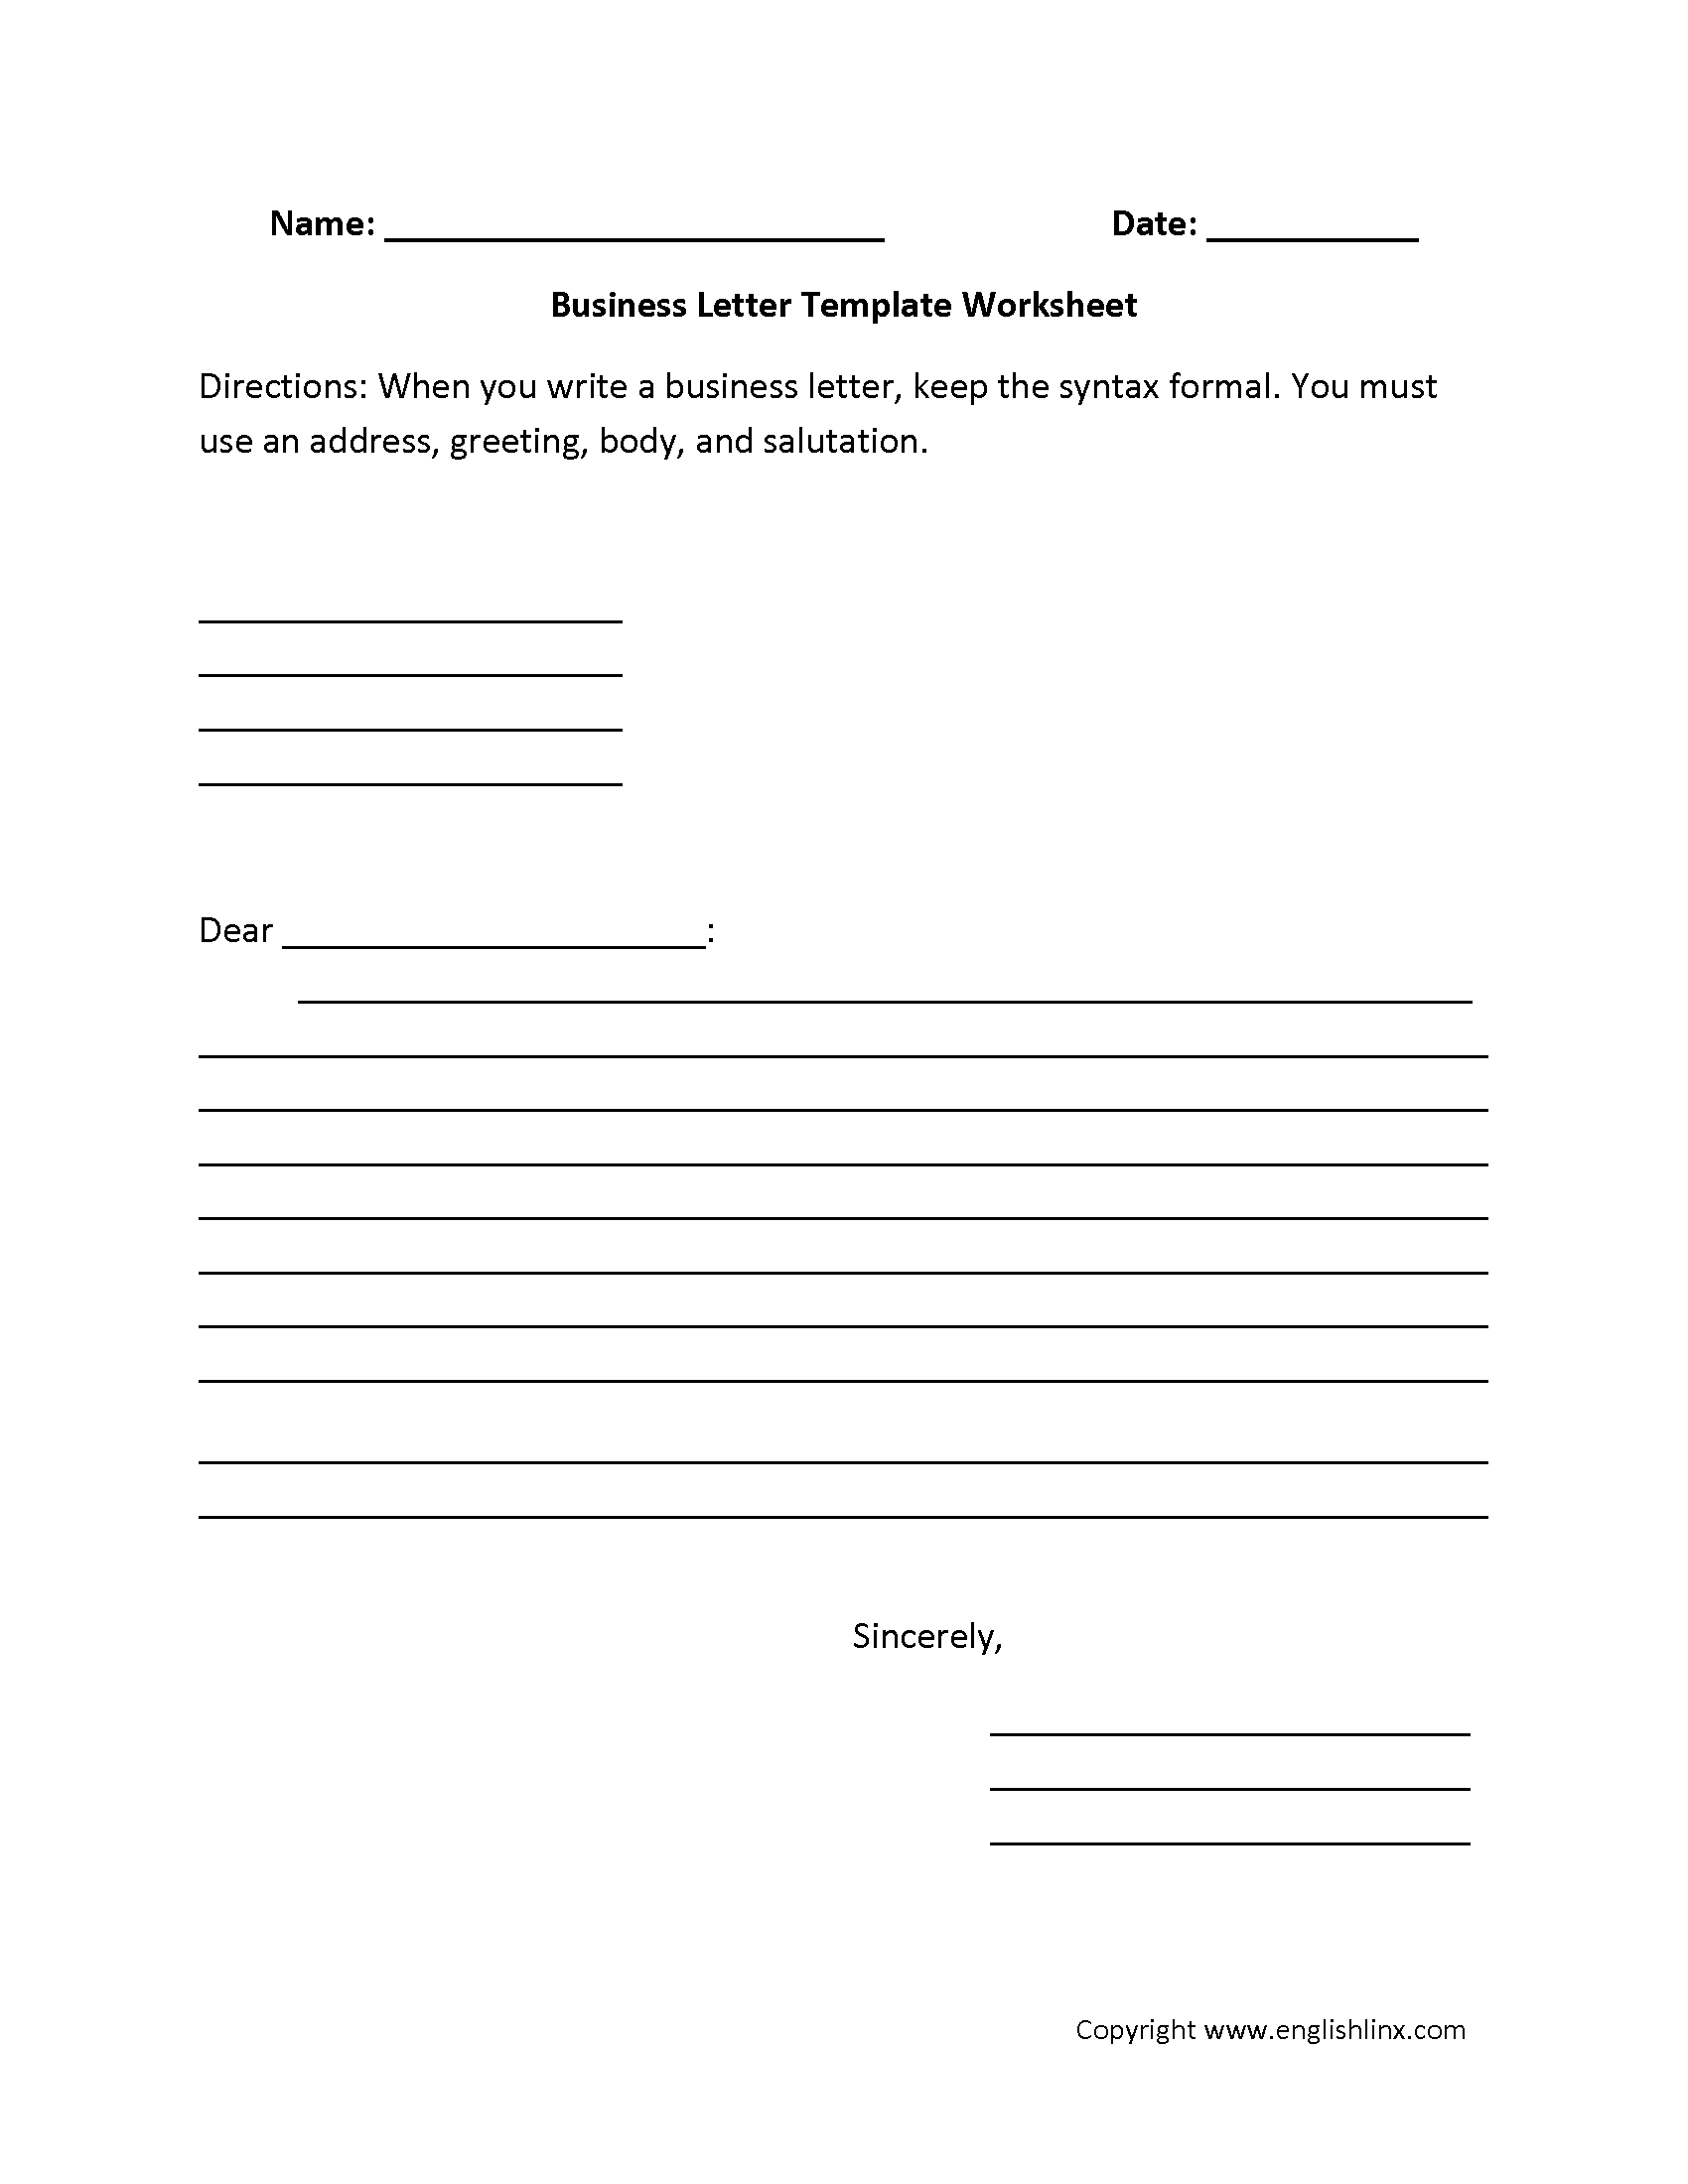 Informal Letter Writing Worksheets For Grade 5 And Formal Letter Writing For Grade 4